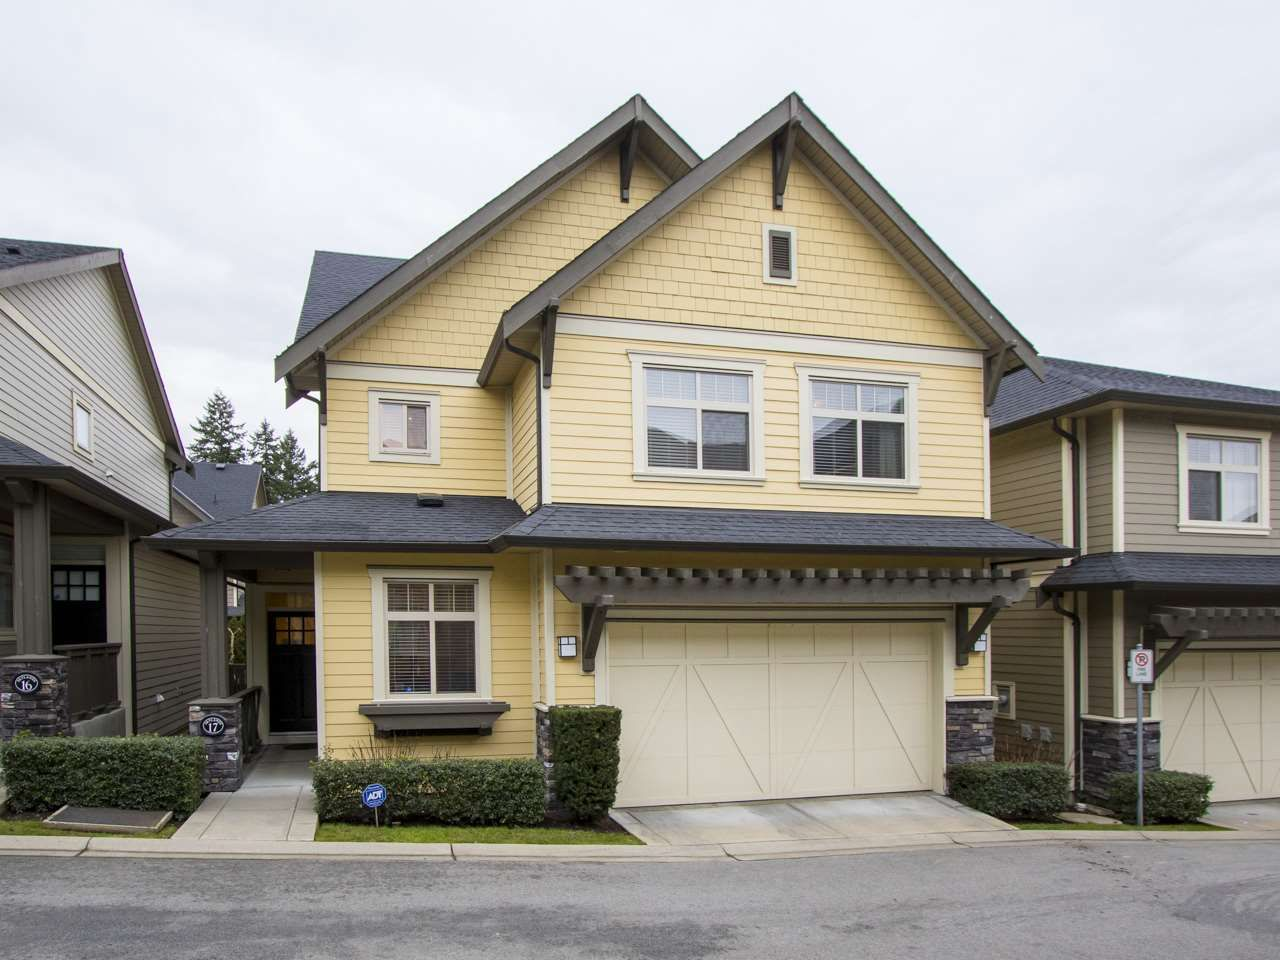 Main Photo: 17 15885 26 AVENUE in Surrey: Grandview Surrey Townhouse for sale (South Surrey White Rock)  : MLS®# R2025383